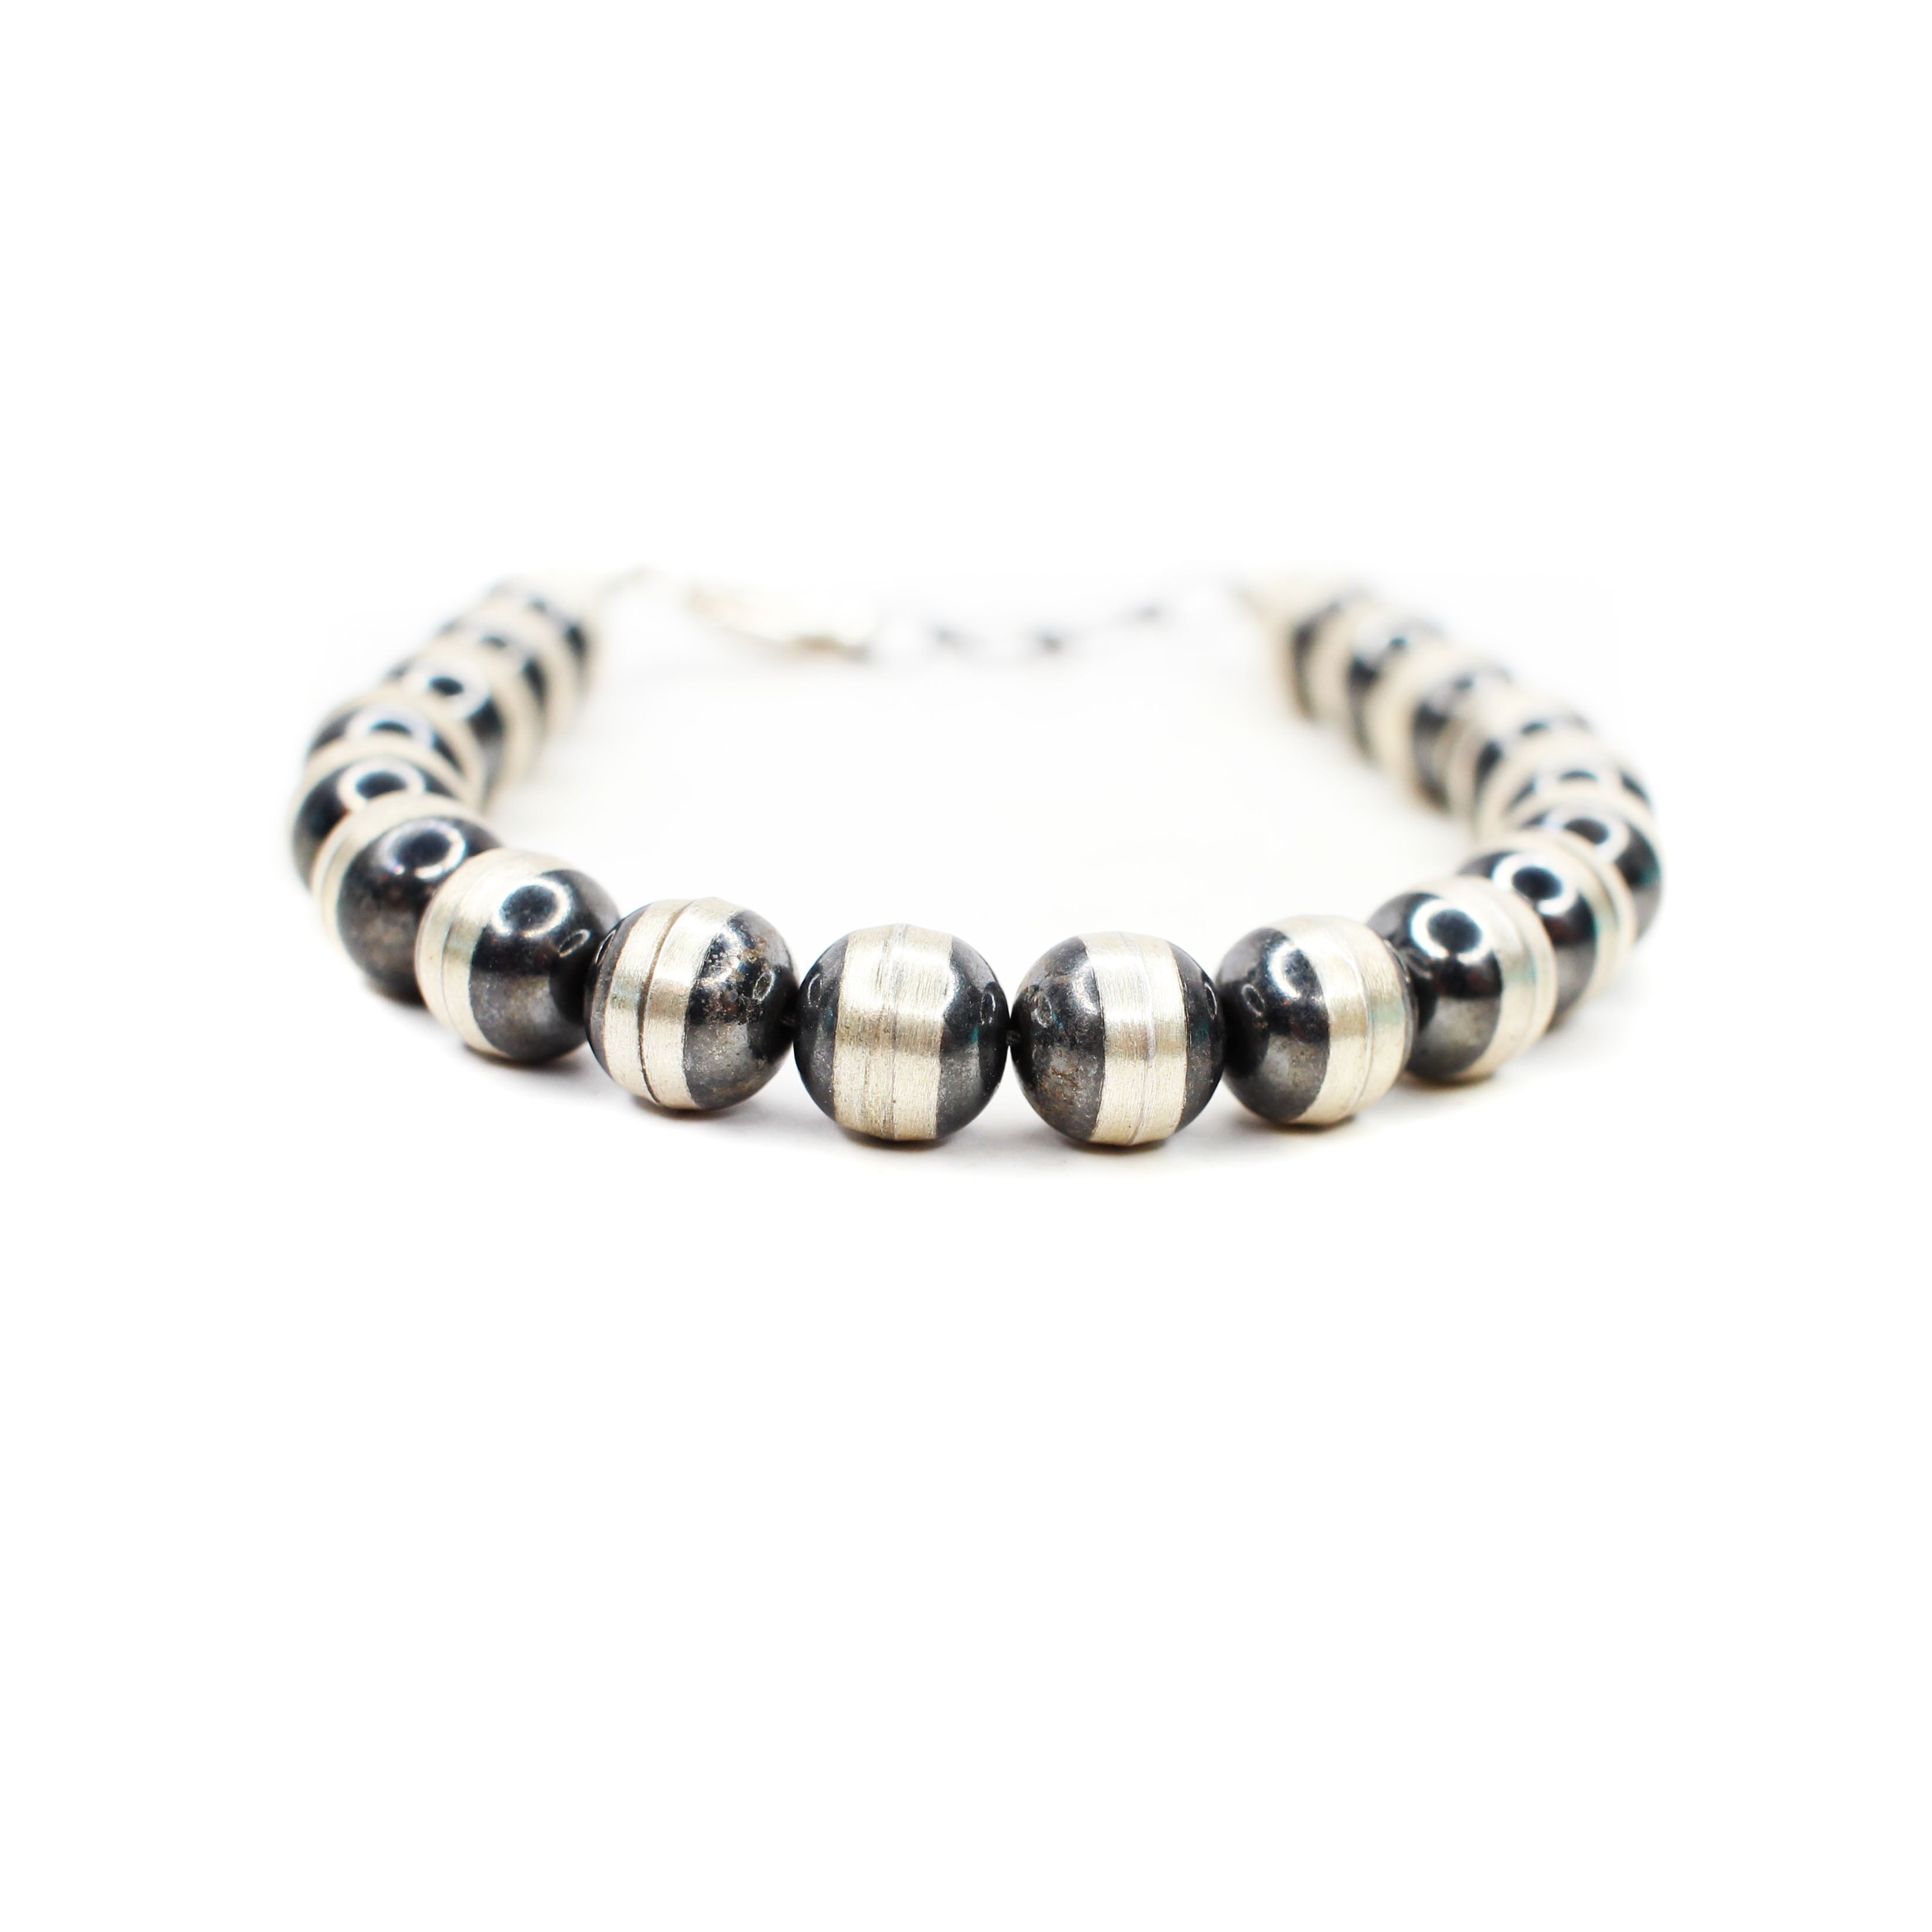 Navajo Pearl Bracelet with Clasp - 8mm